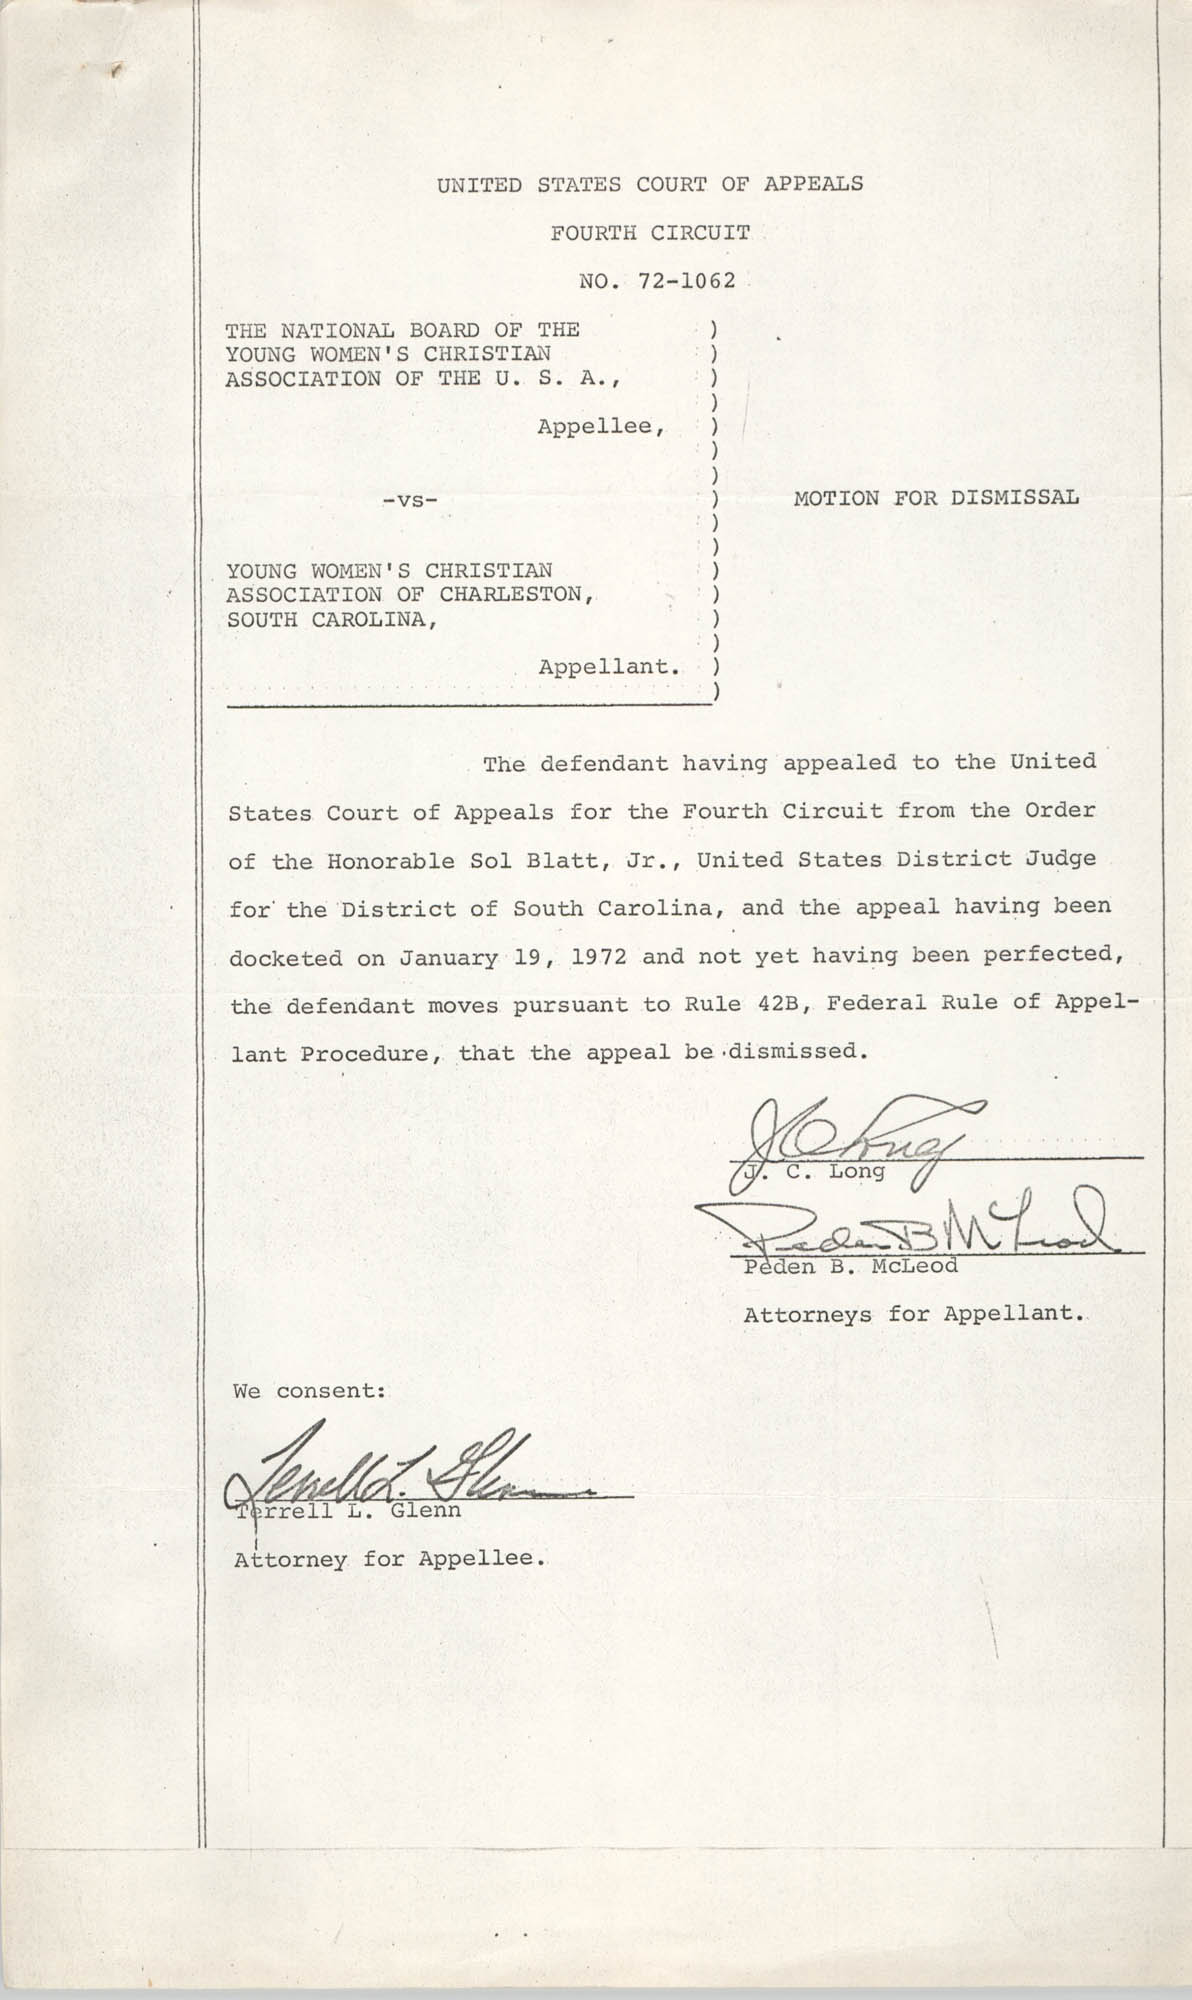 National Board of the Y.W.C.A. of the U.S.A. vs. Y.W.C.A. of Charleston South Carolina, No. 72-1062, Motion for Dismissal